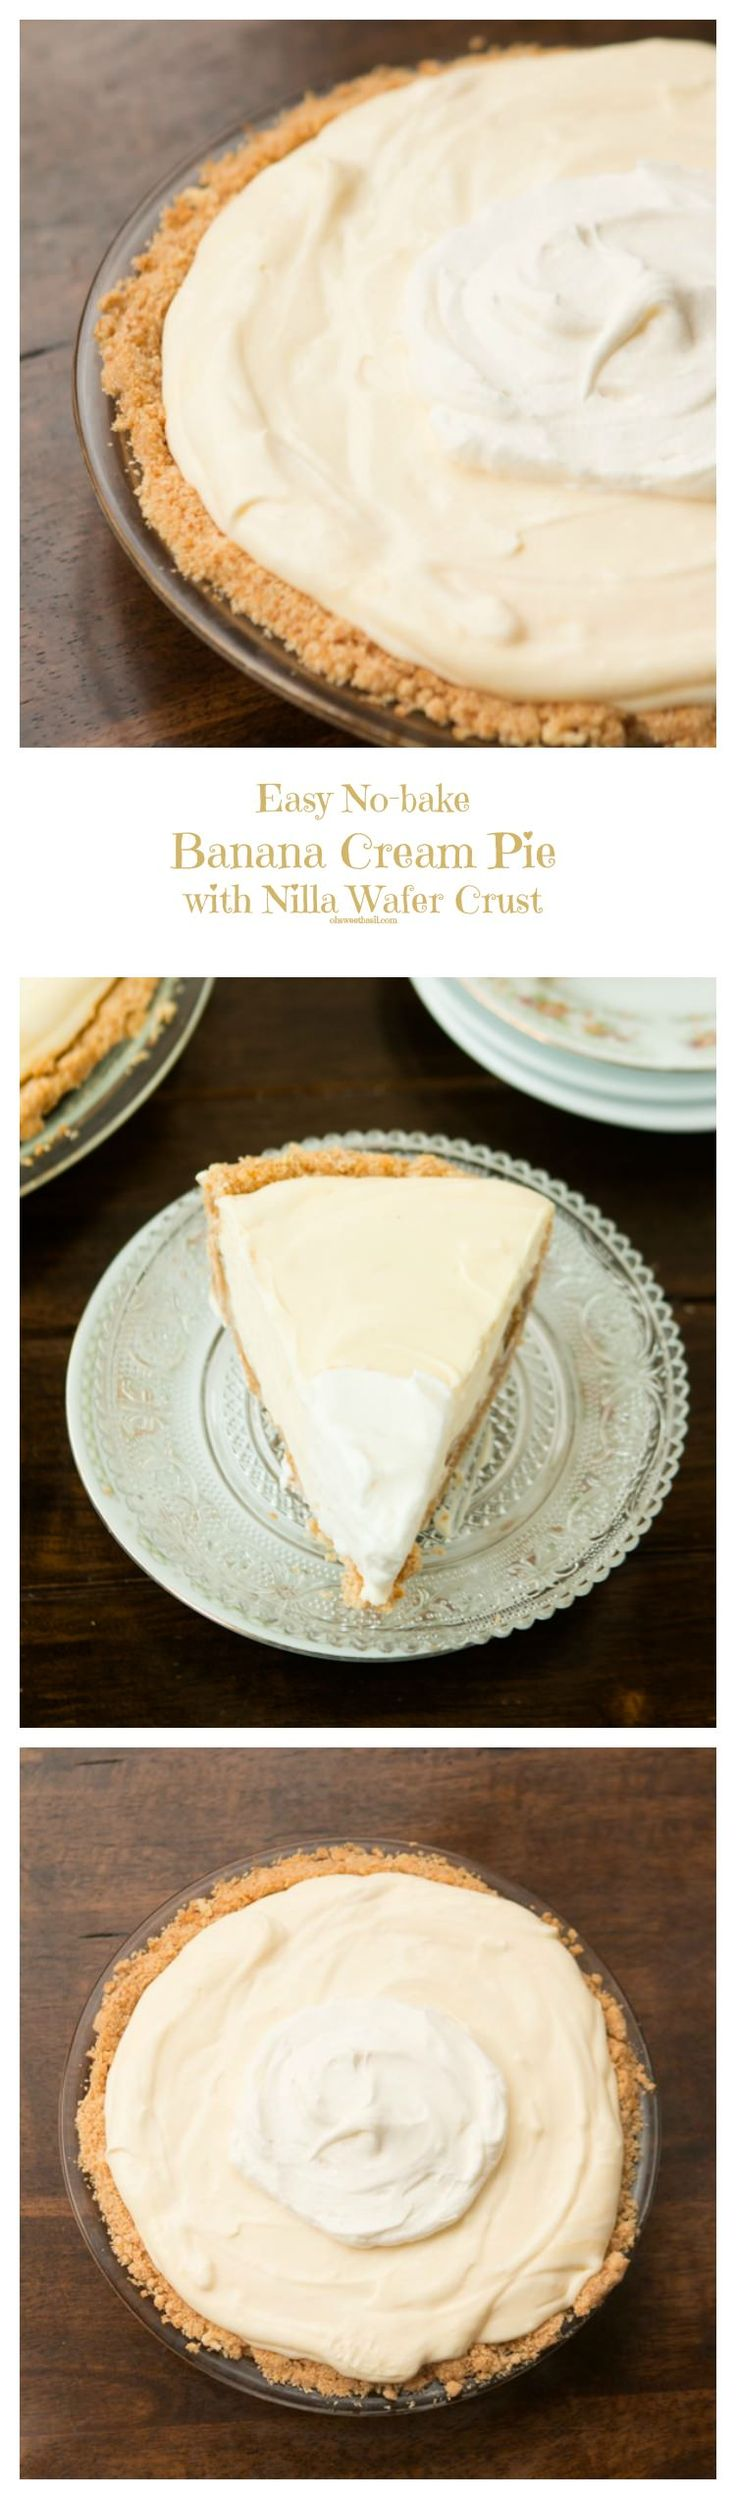 Easy No Bake Banana Cream Pie with Nilla Wafer Crust ohsweetbasil.com